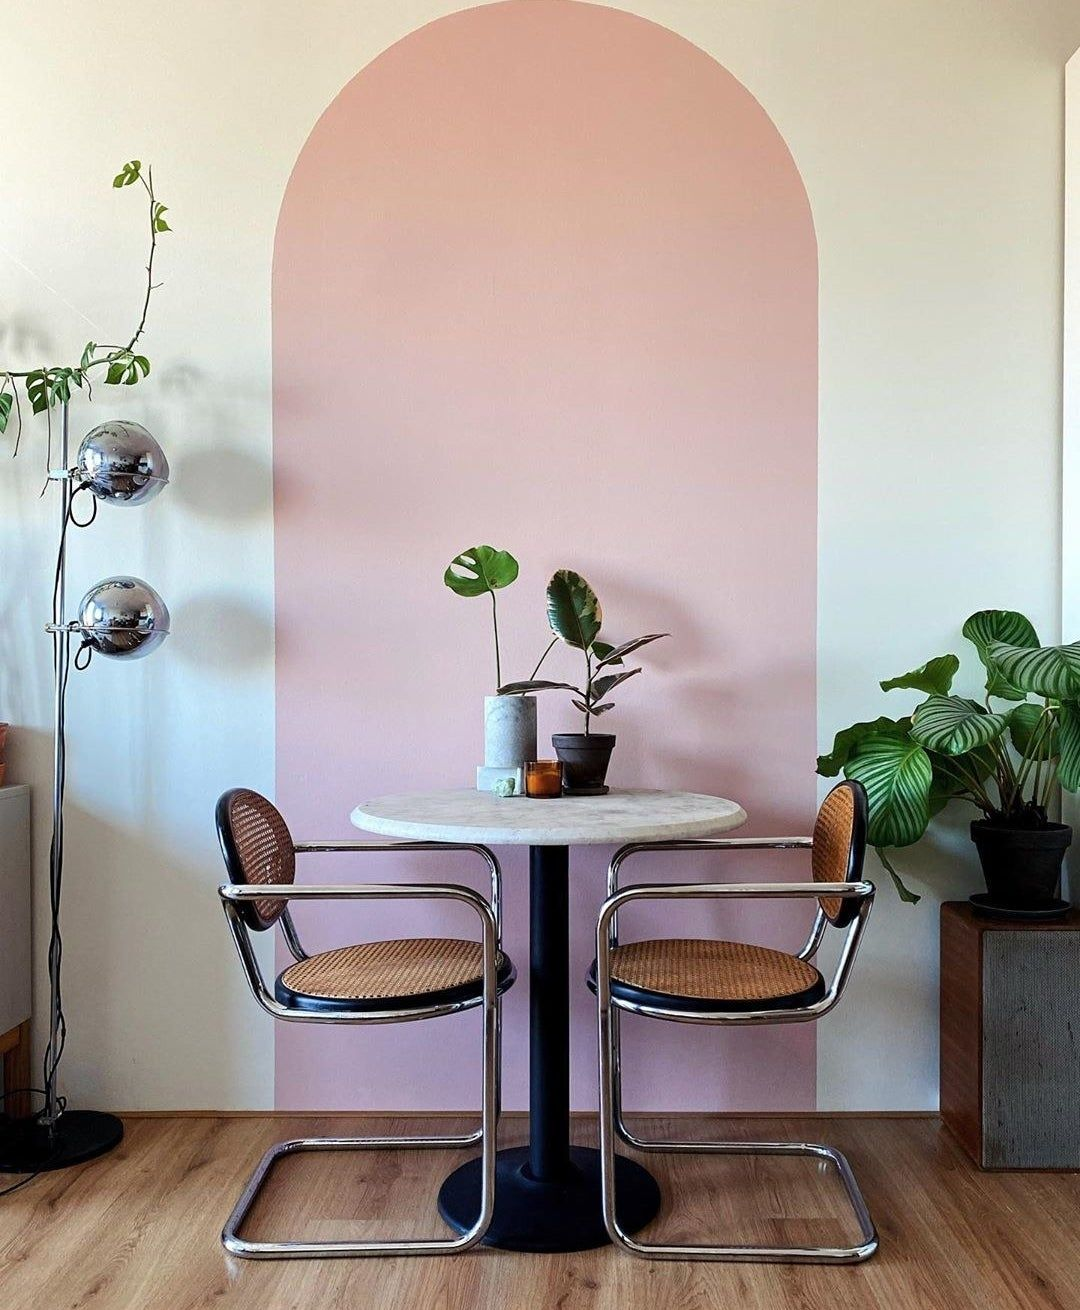 If you're feeling more ambitious, you could use paint to create an accent wall — whether you paint one wall a different color or use painter's tape or stencils to create patterns and shapes.